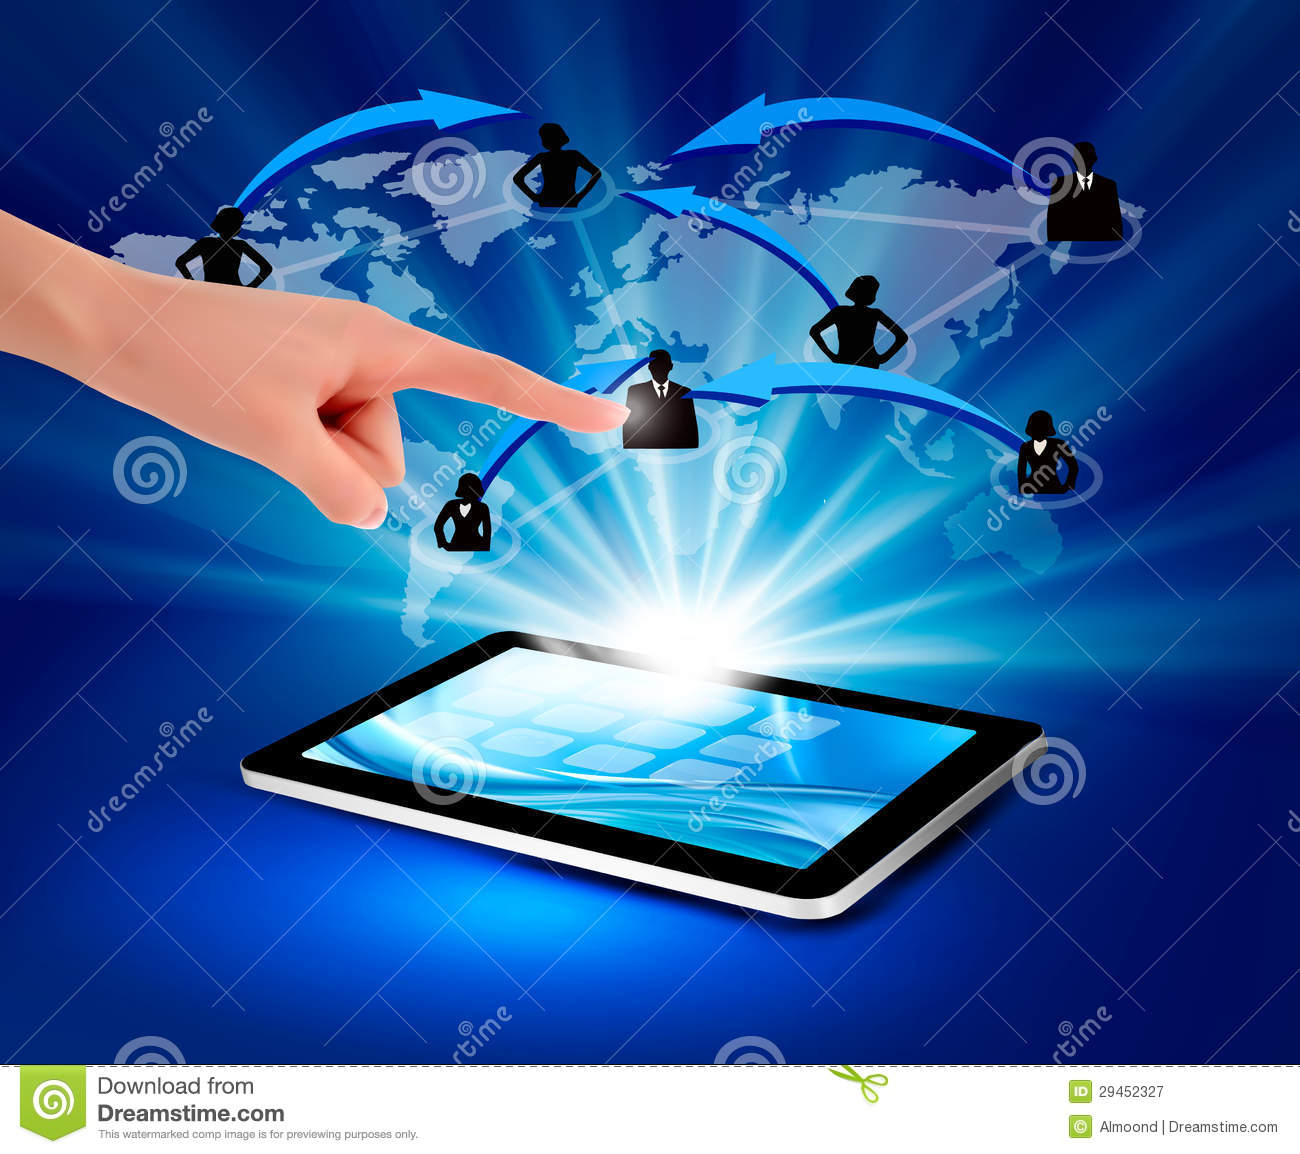 Modern communication technology illustration with